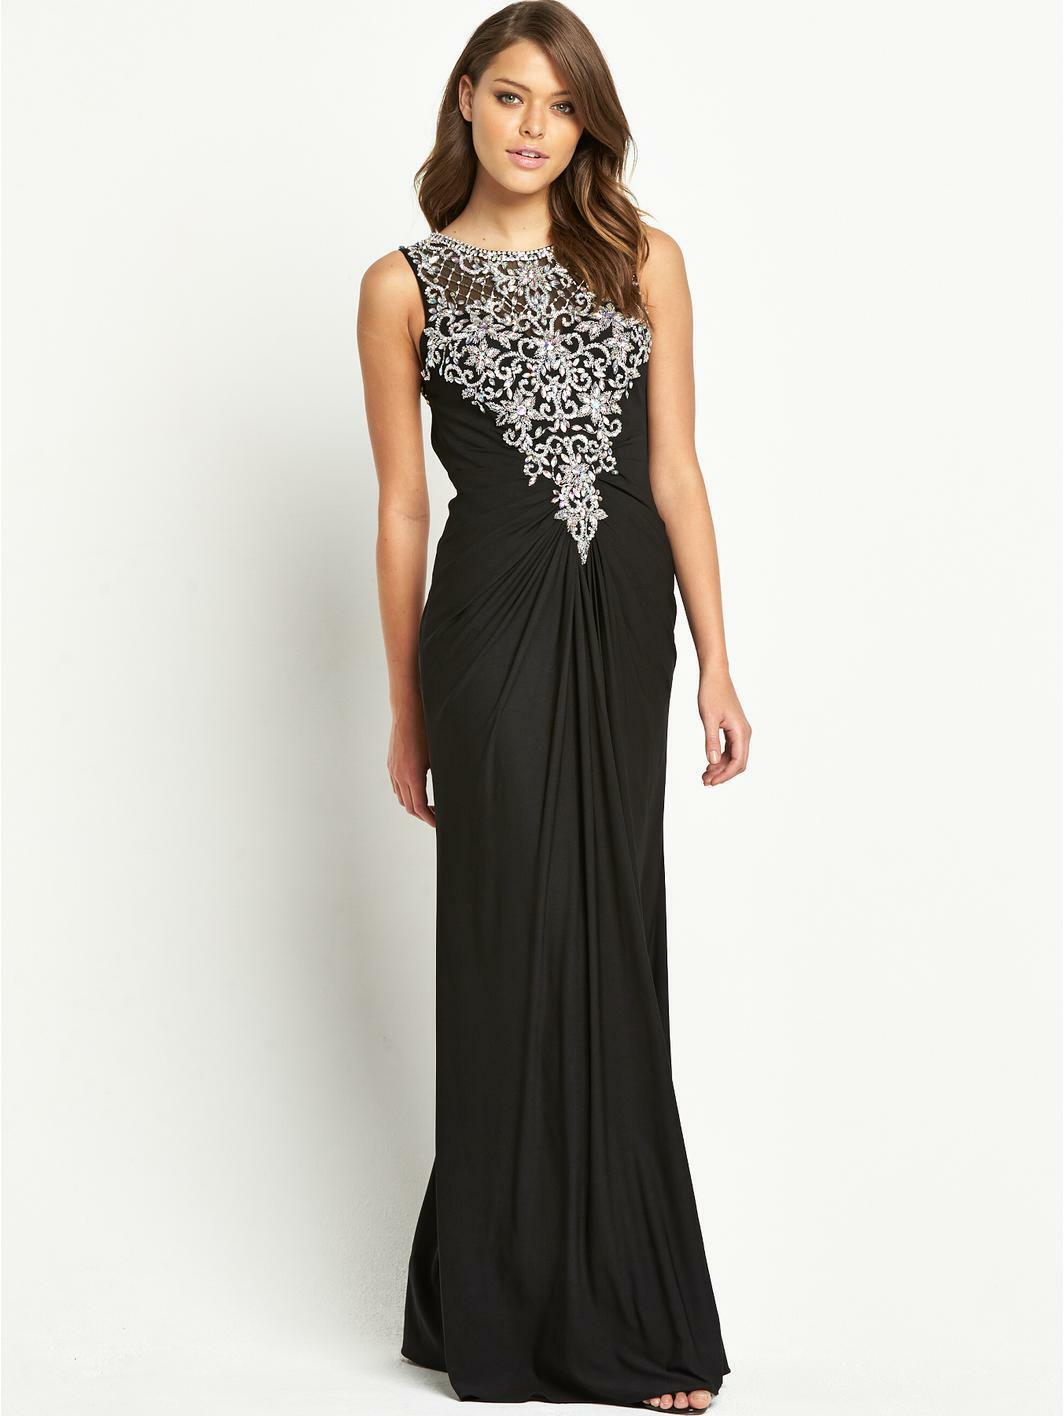 NEW Forever Unique Ariel Prom Gown Dress  Size UK8 RRP